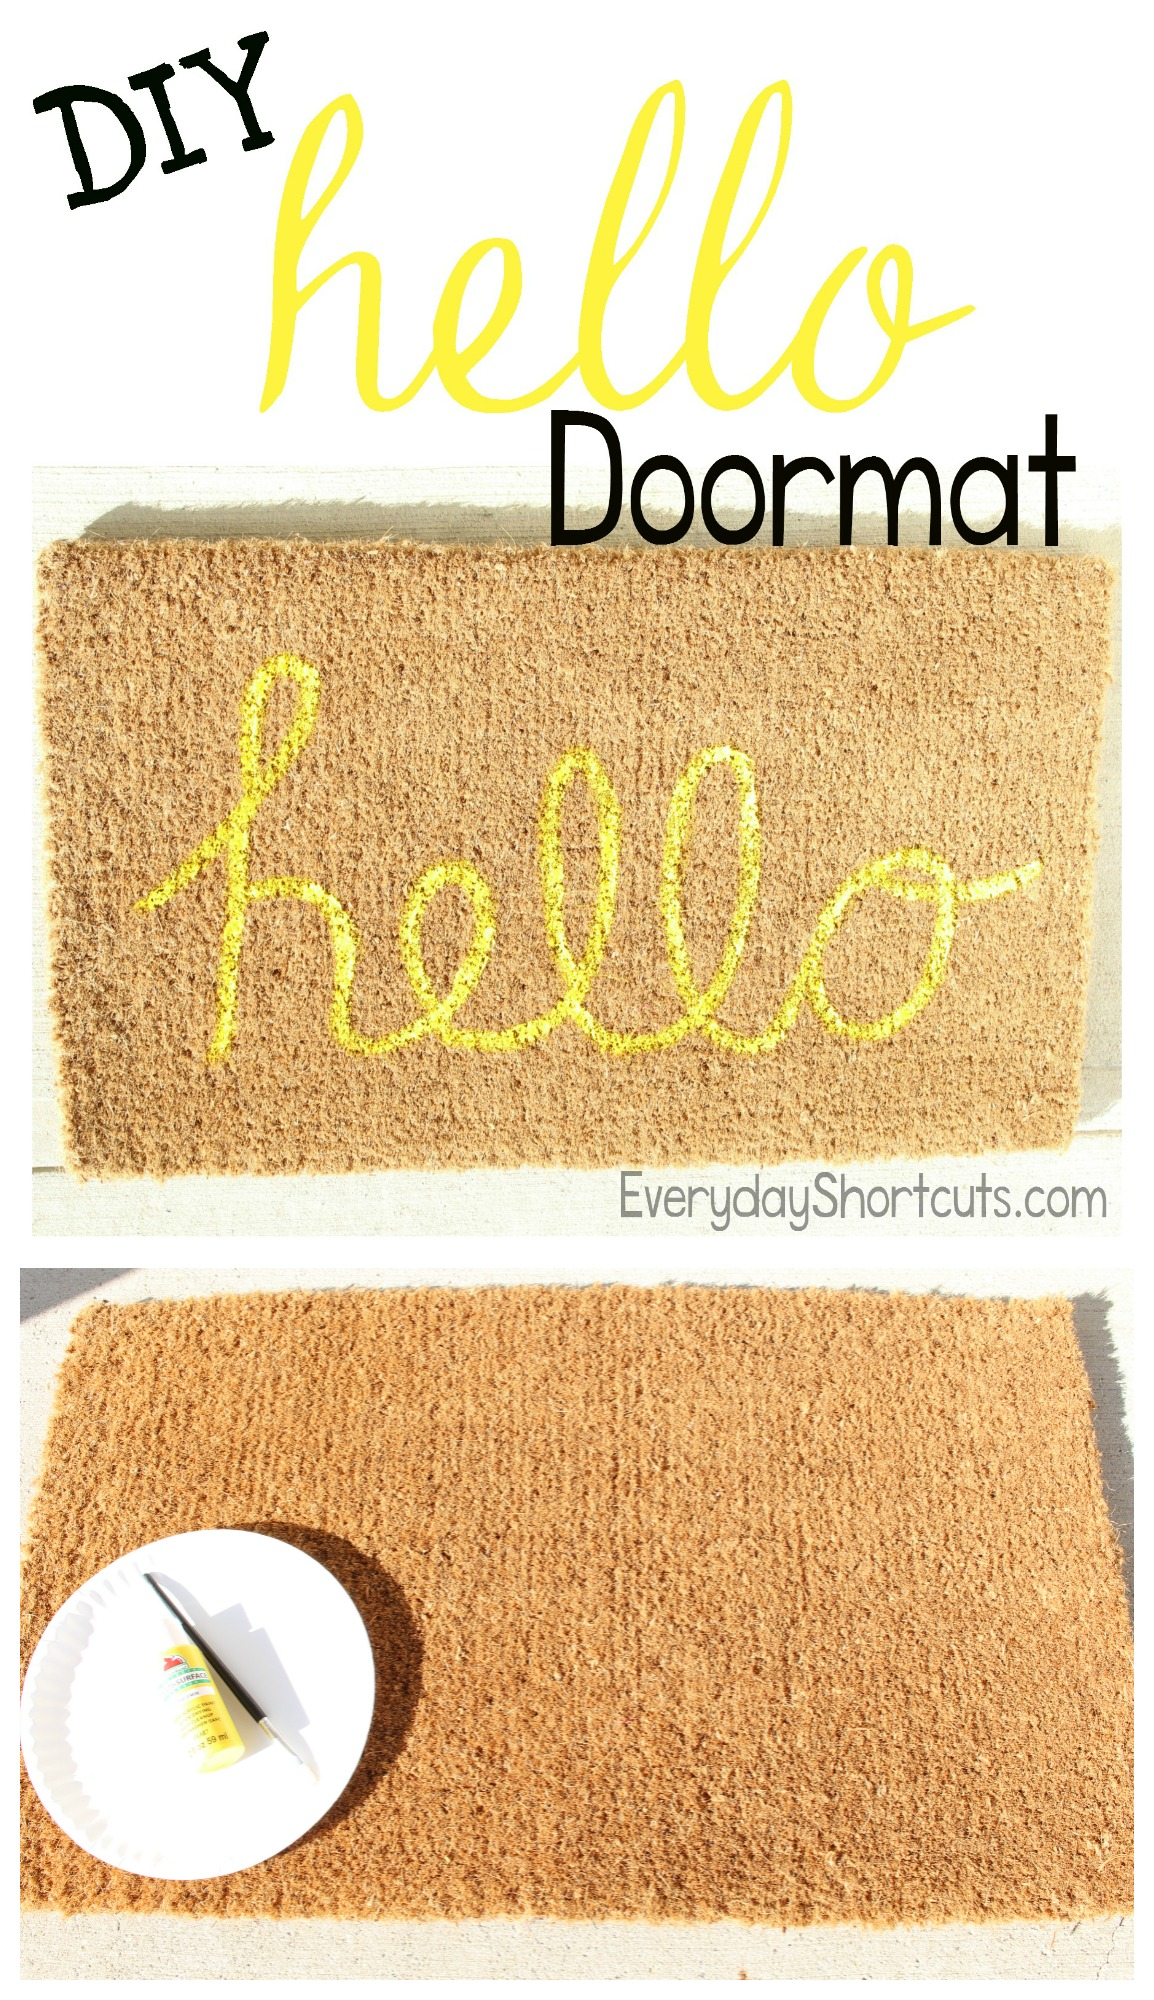 diy-hello-saying-doormat